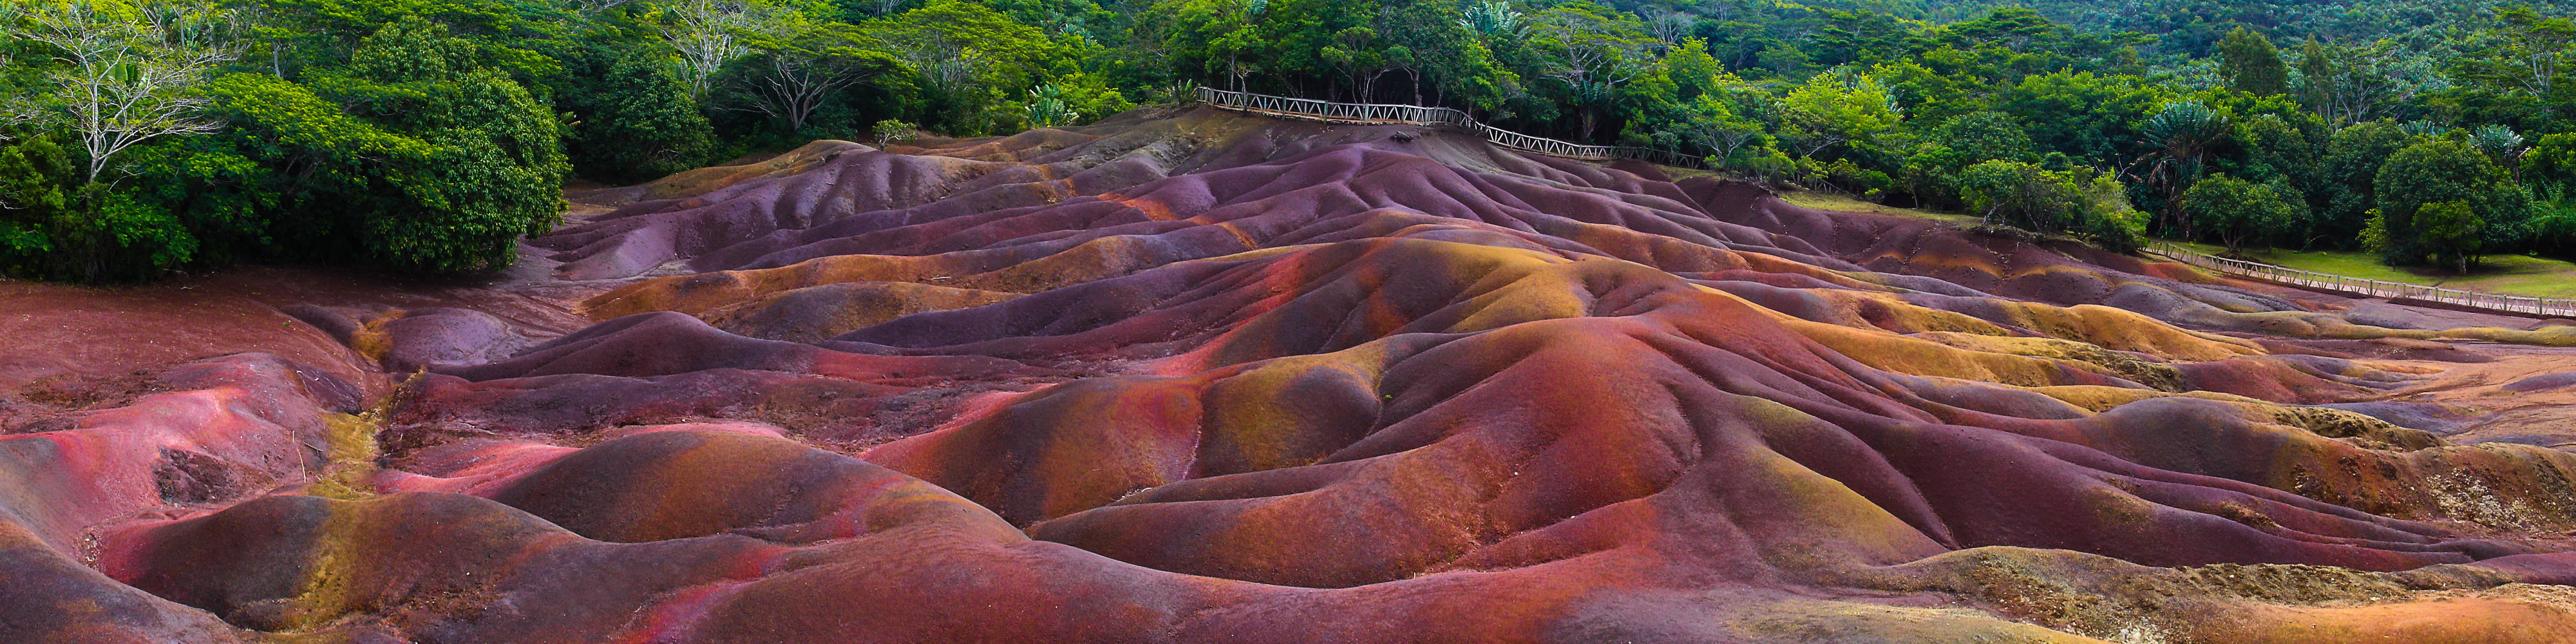 seven colored earths geological feature in mauritius thousand